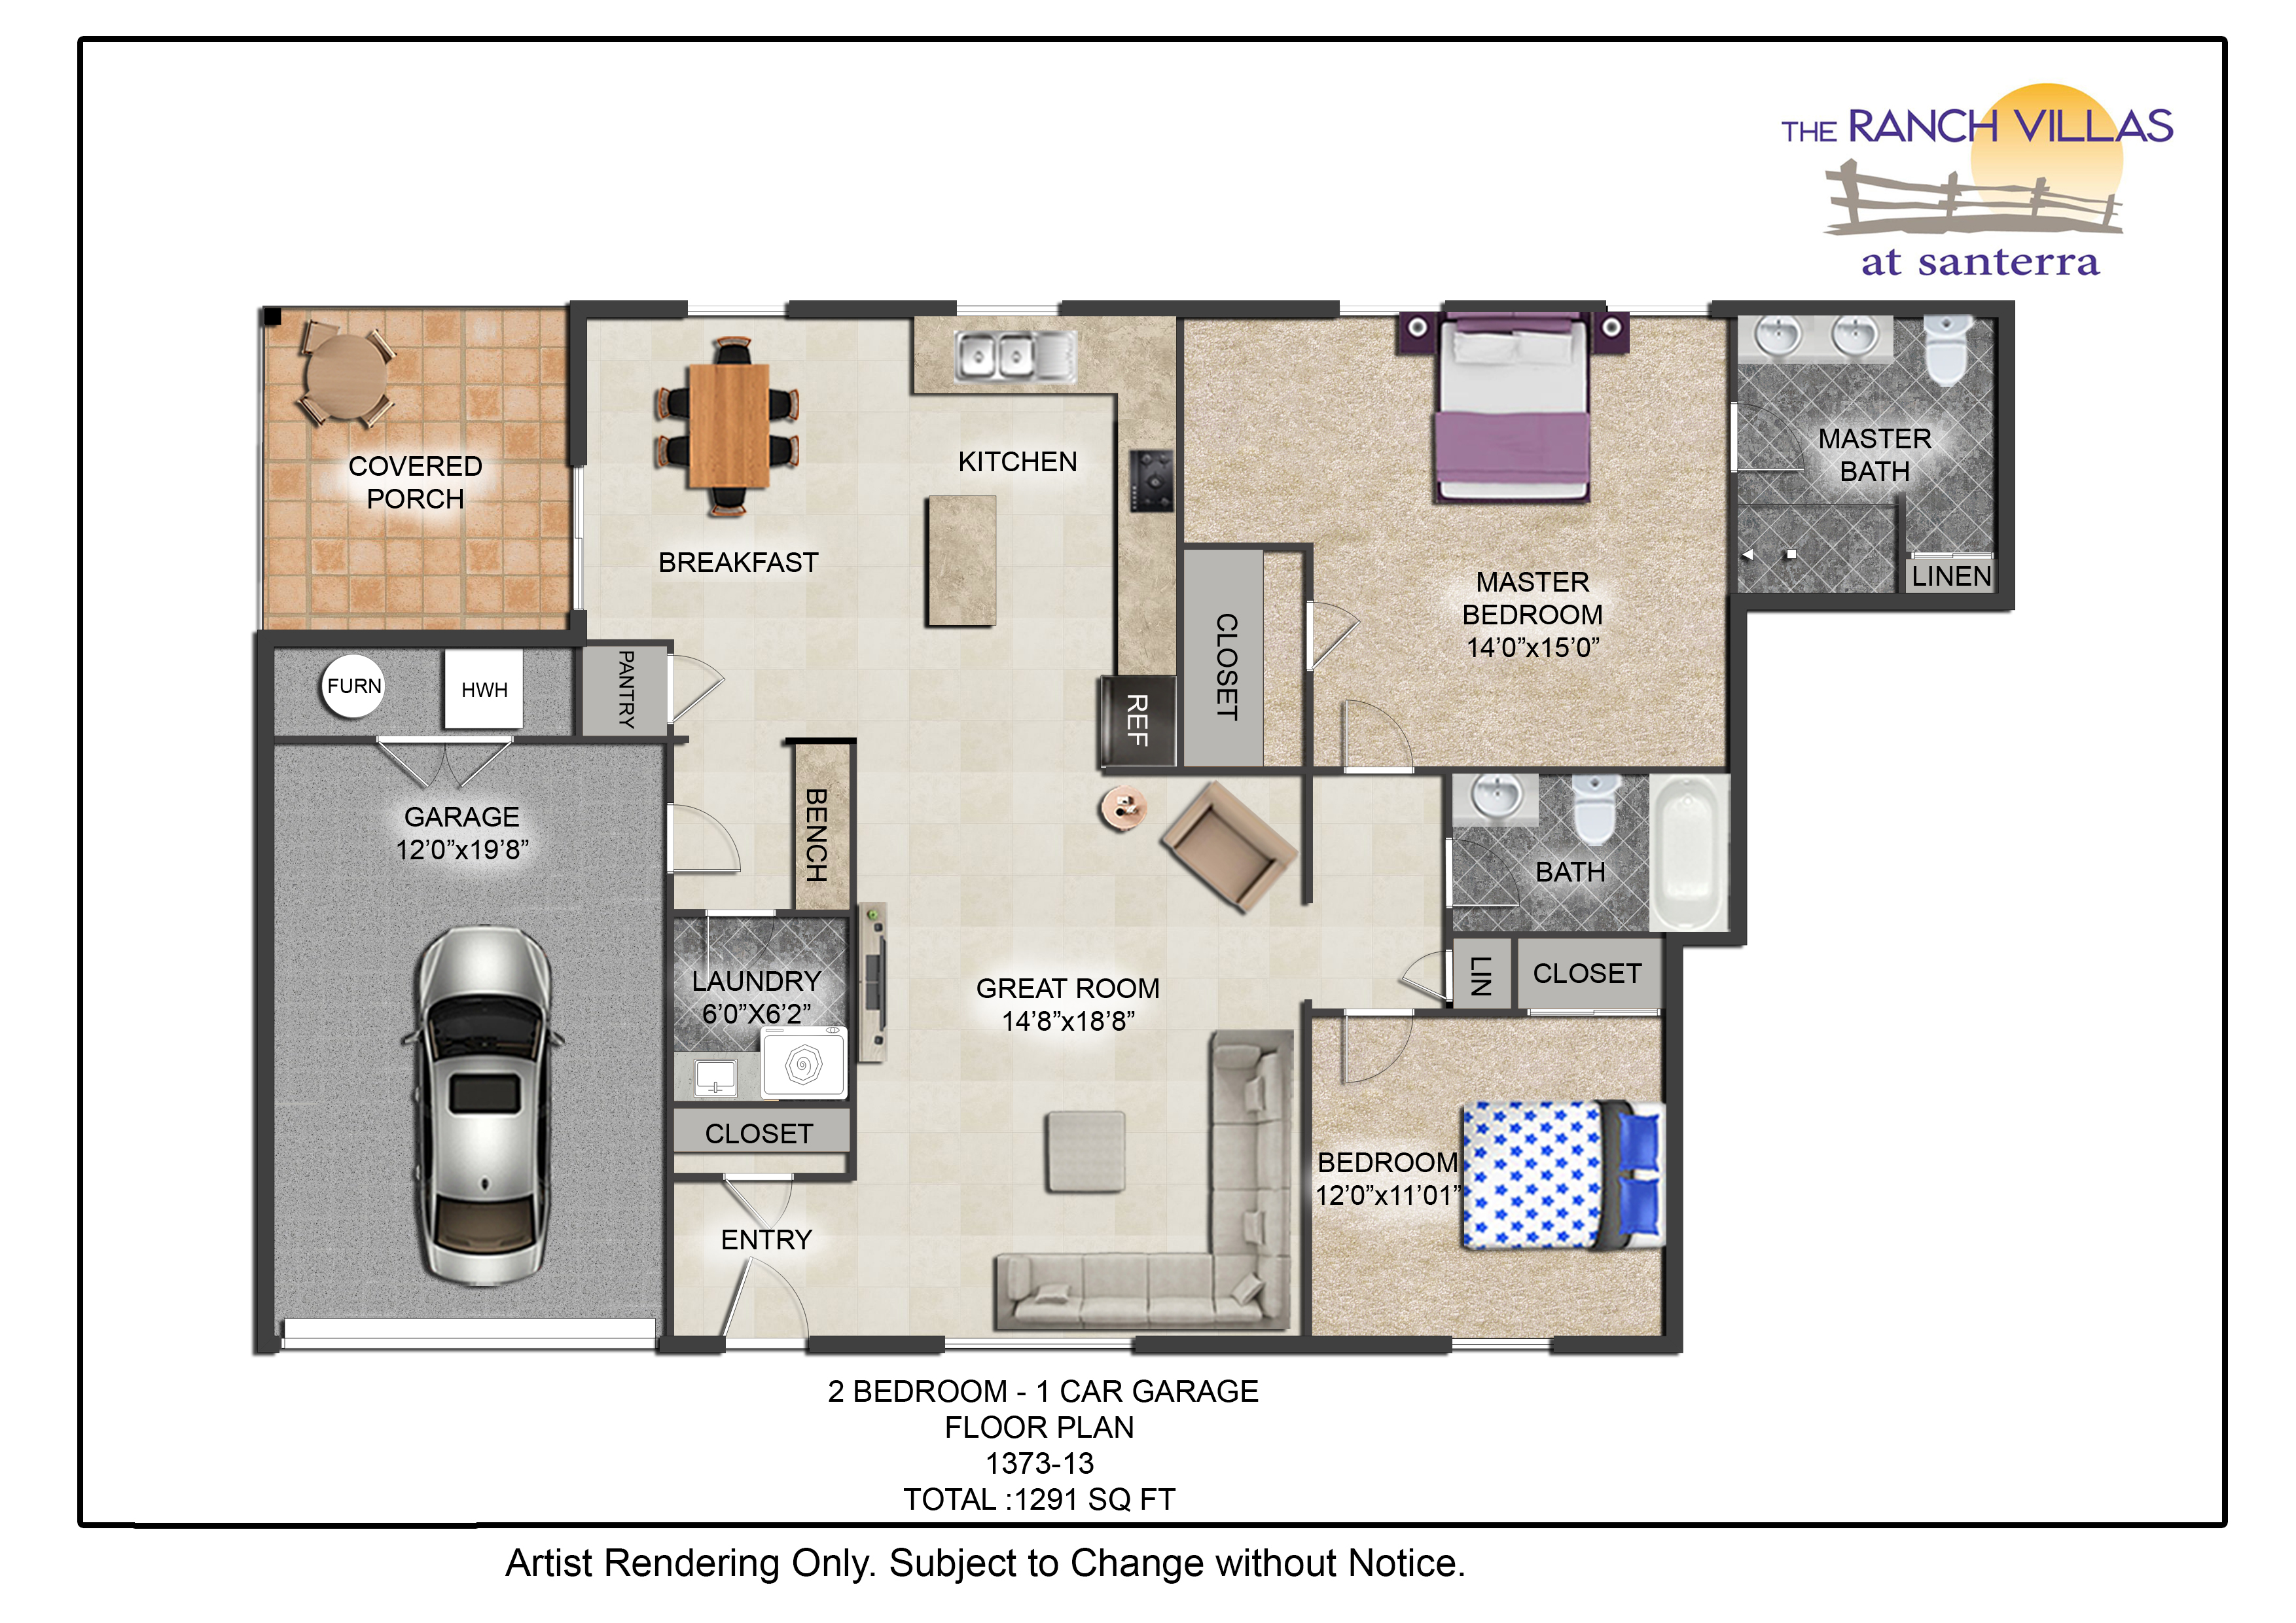 Car Garage Floor Plan: 2 Bedroom 1 Car Garage